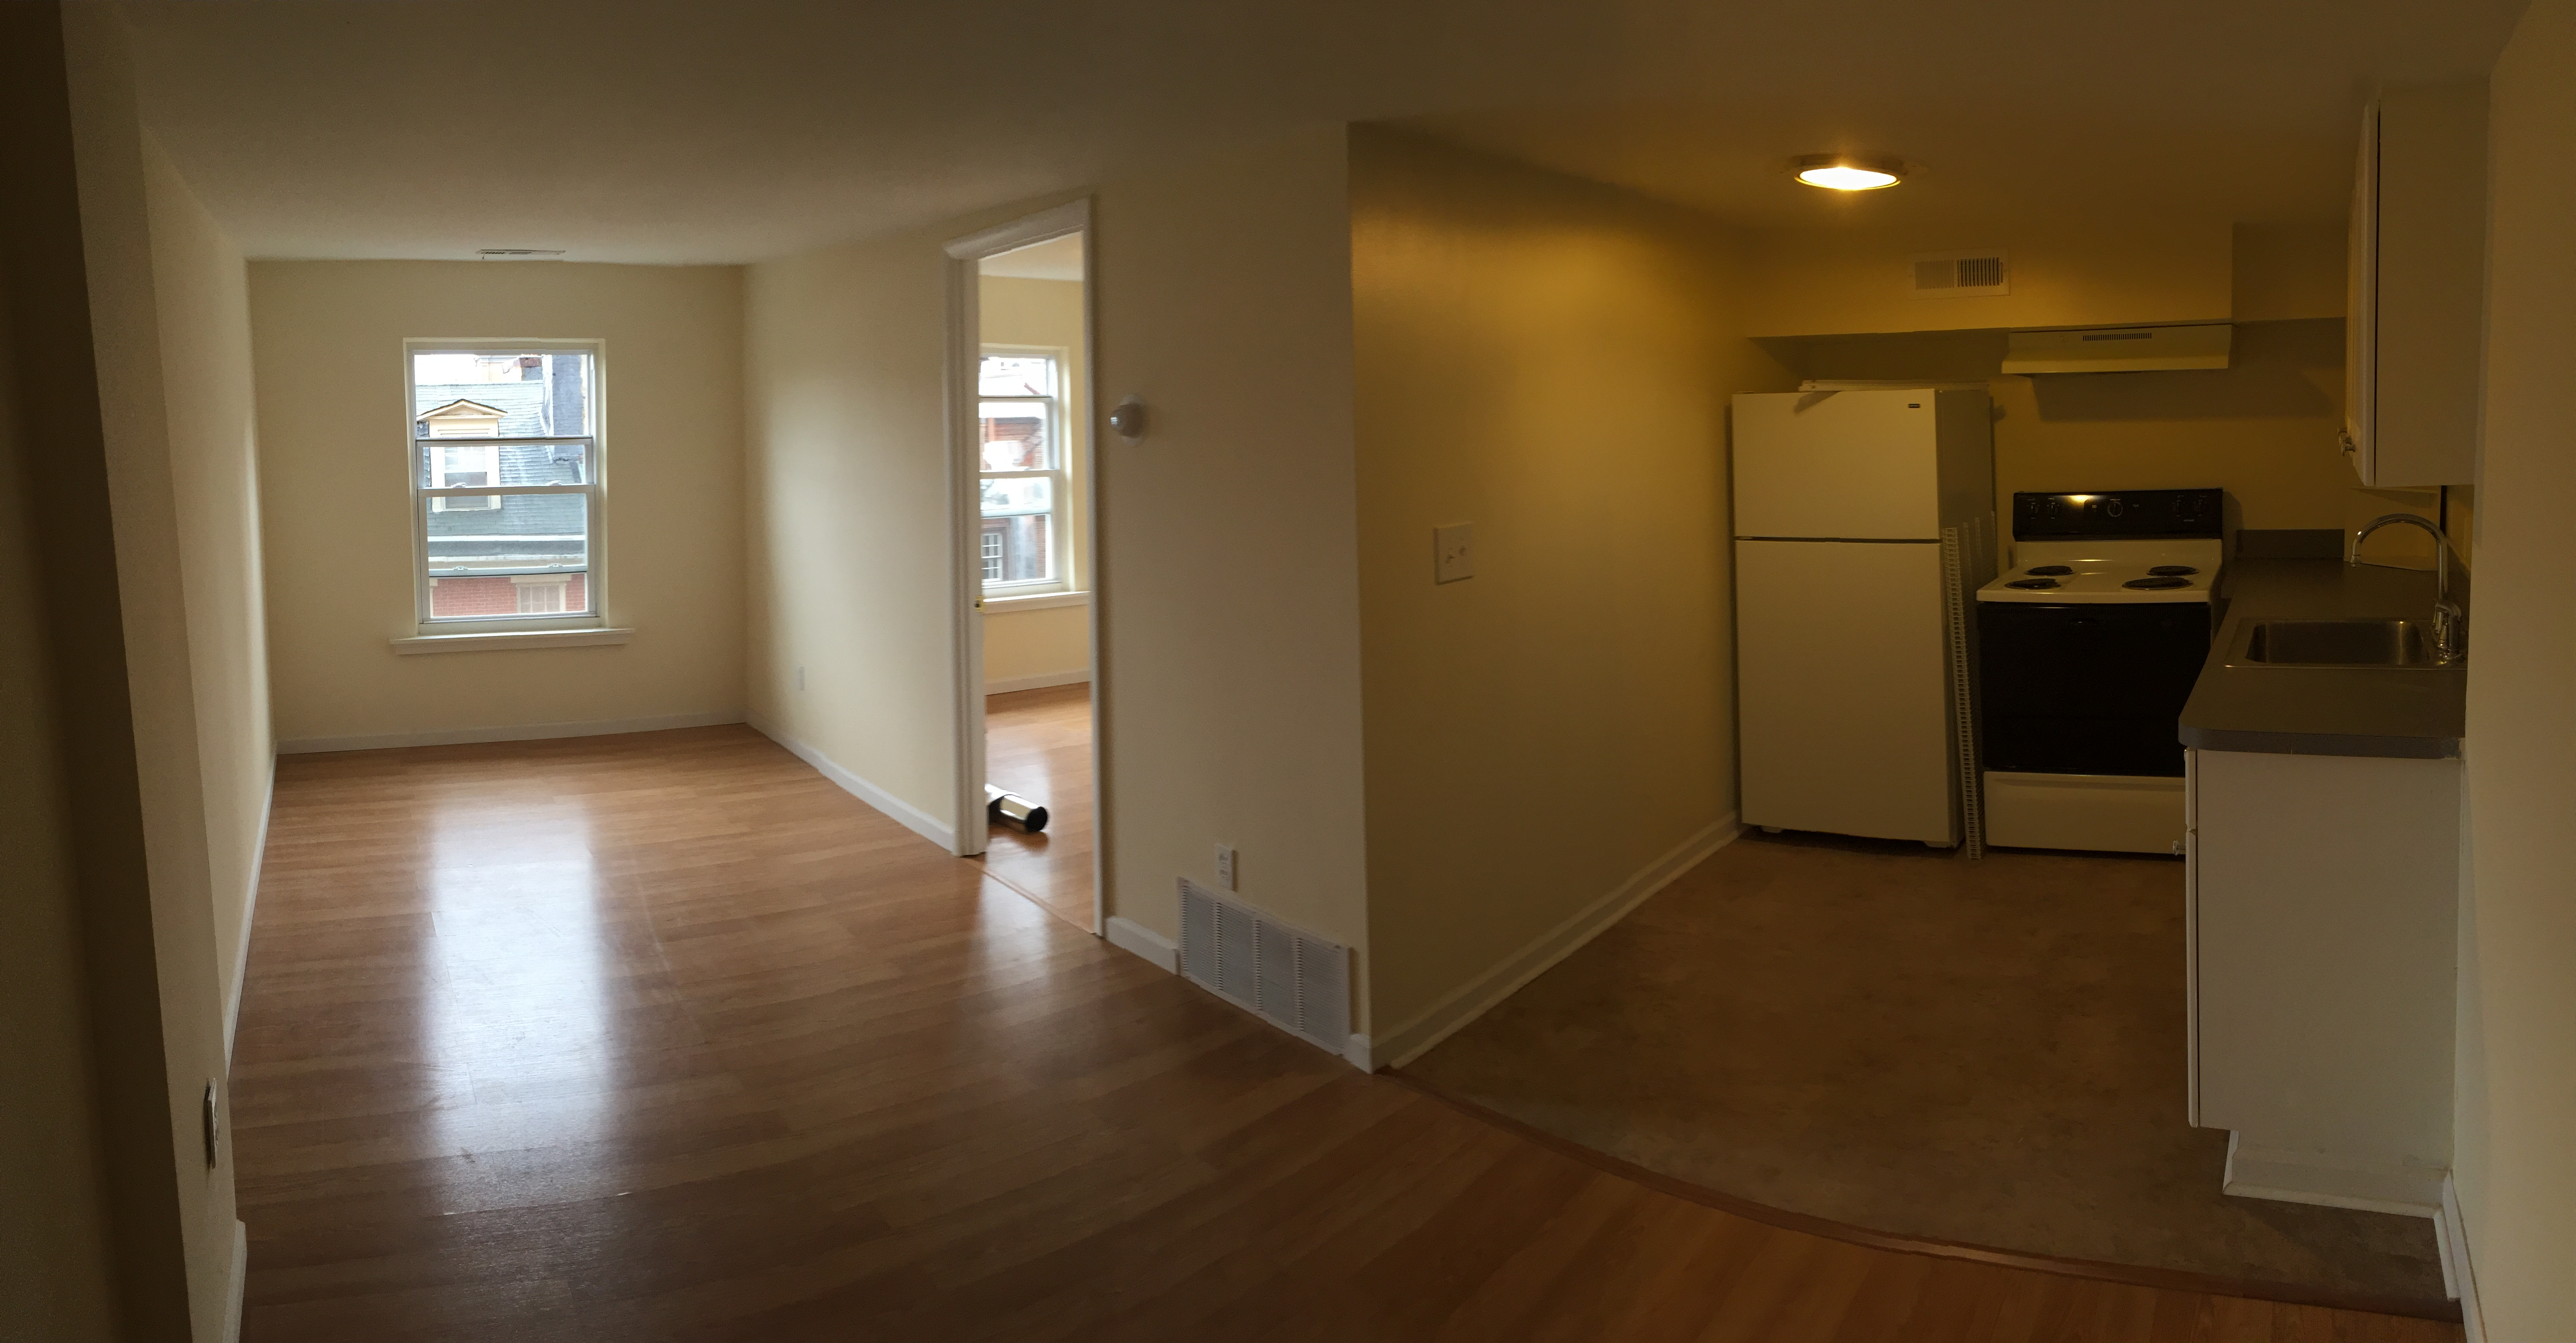 309 S. 16th full view